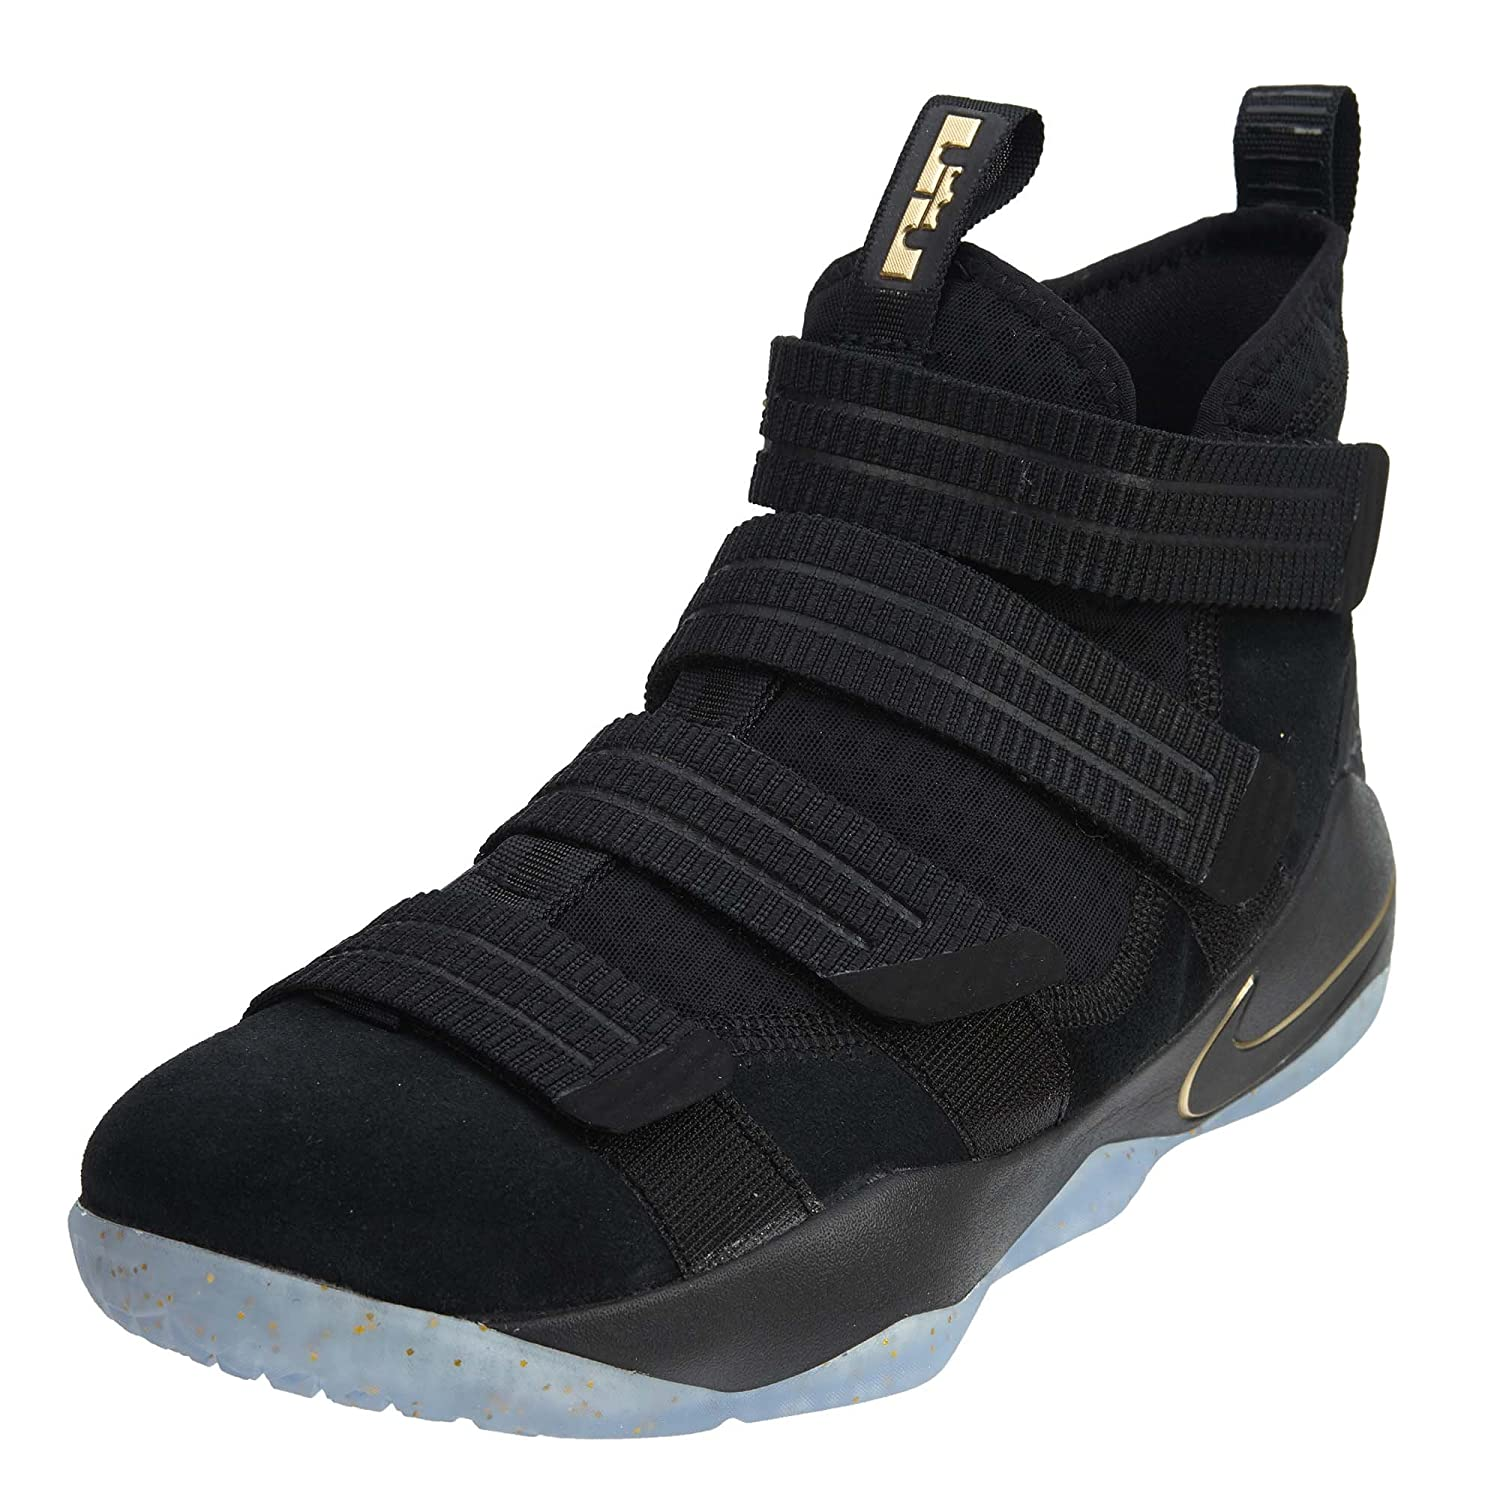 low priced 61080 72085 Amazon.com | Nike Mens Lebron Soldier XI Basketball Shoe (11 ...